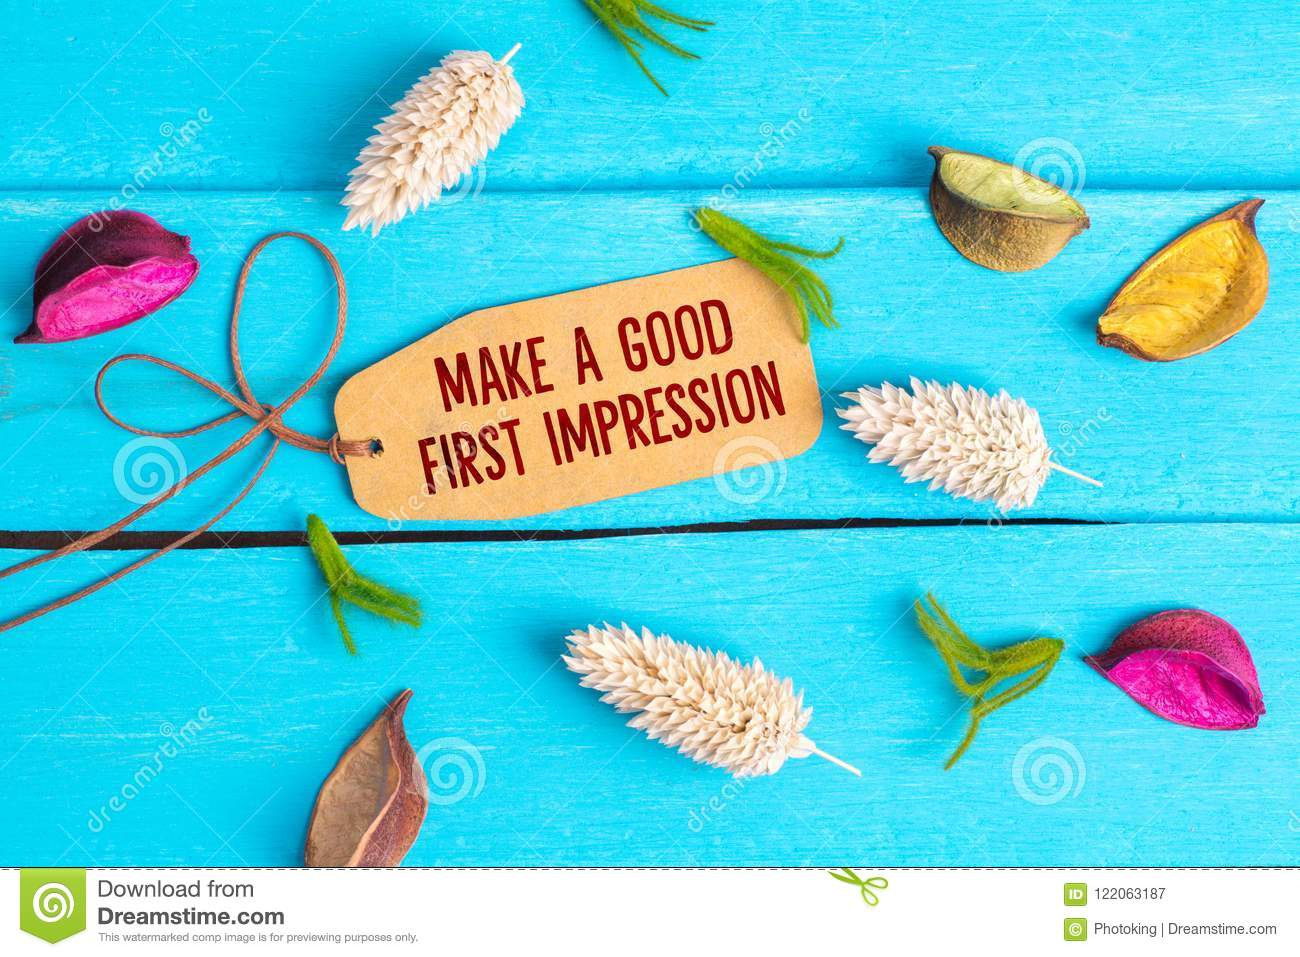 Make a good first impression text on paper tag